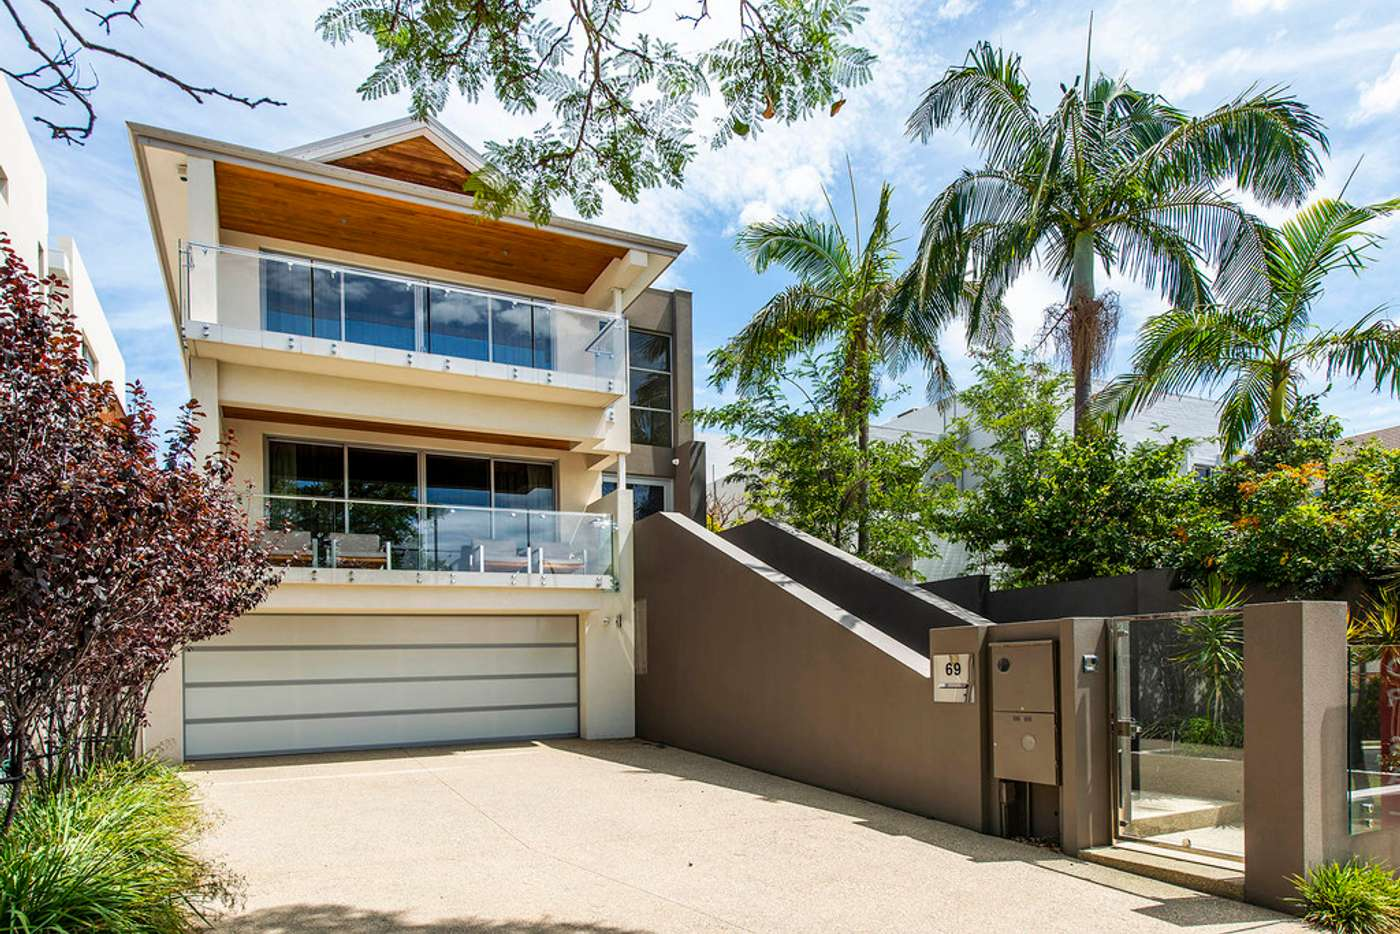 Main view of Homely house listing, 69 Strickland Street, South Perth WA 6151